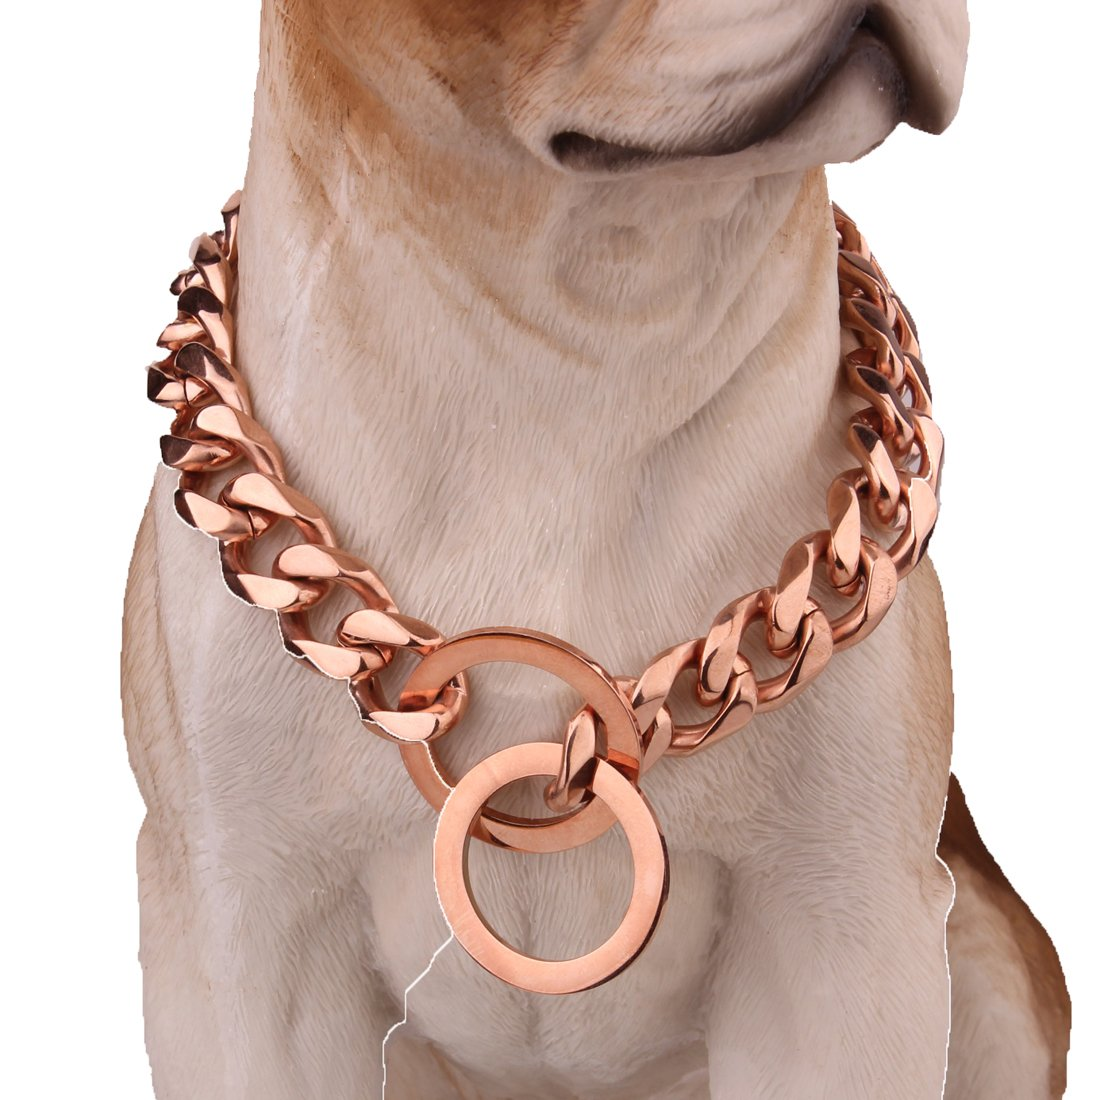 16inch recommend dog's neck 12inch Pet Collar Jewelry 15 17 19mm pink gold Curb Chain Stainless Steel Dog Chain Necklace Choker,12-32 Inches (19mm Wide, 16inch Recommend Dog's Neck 12inch)